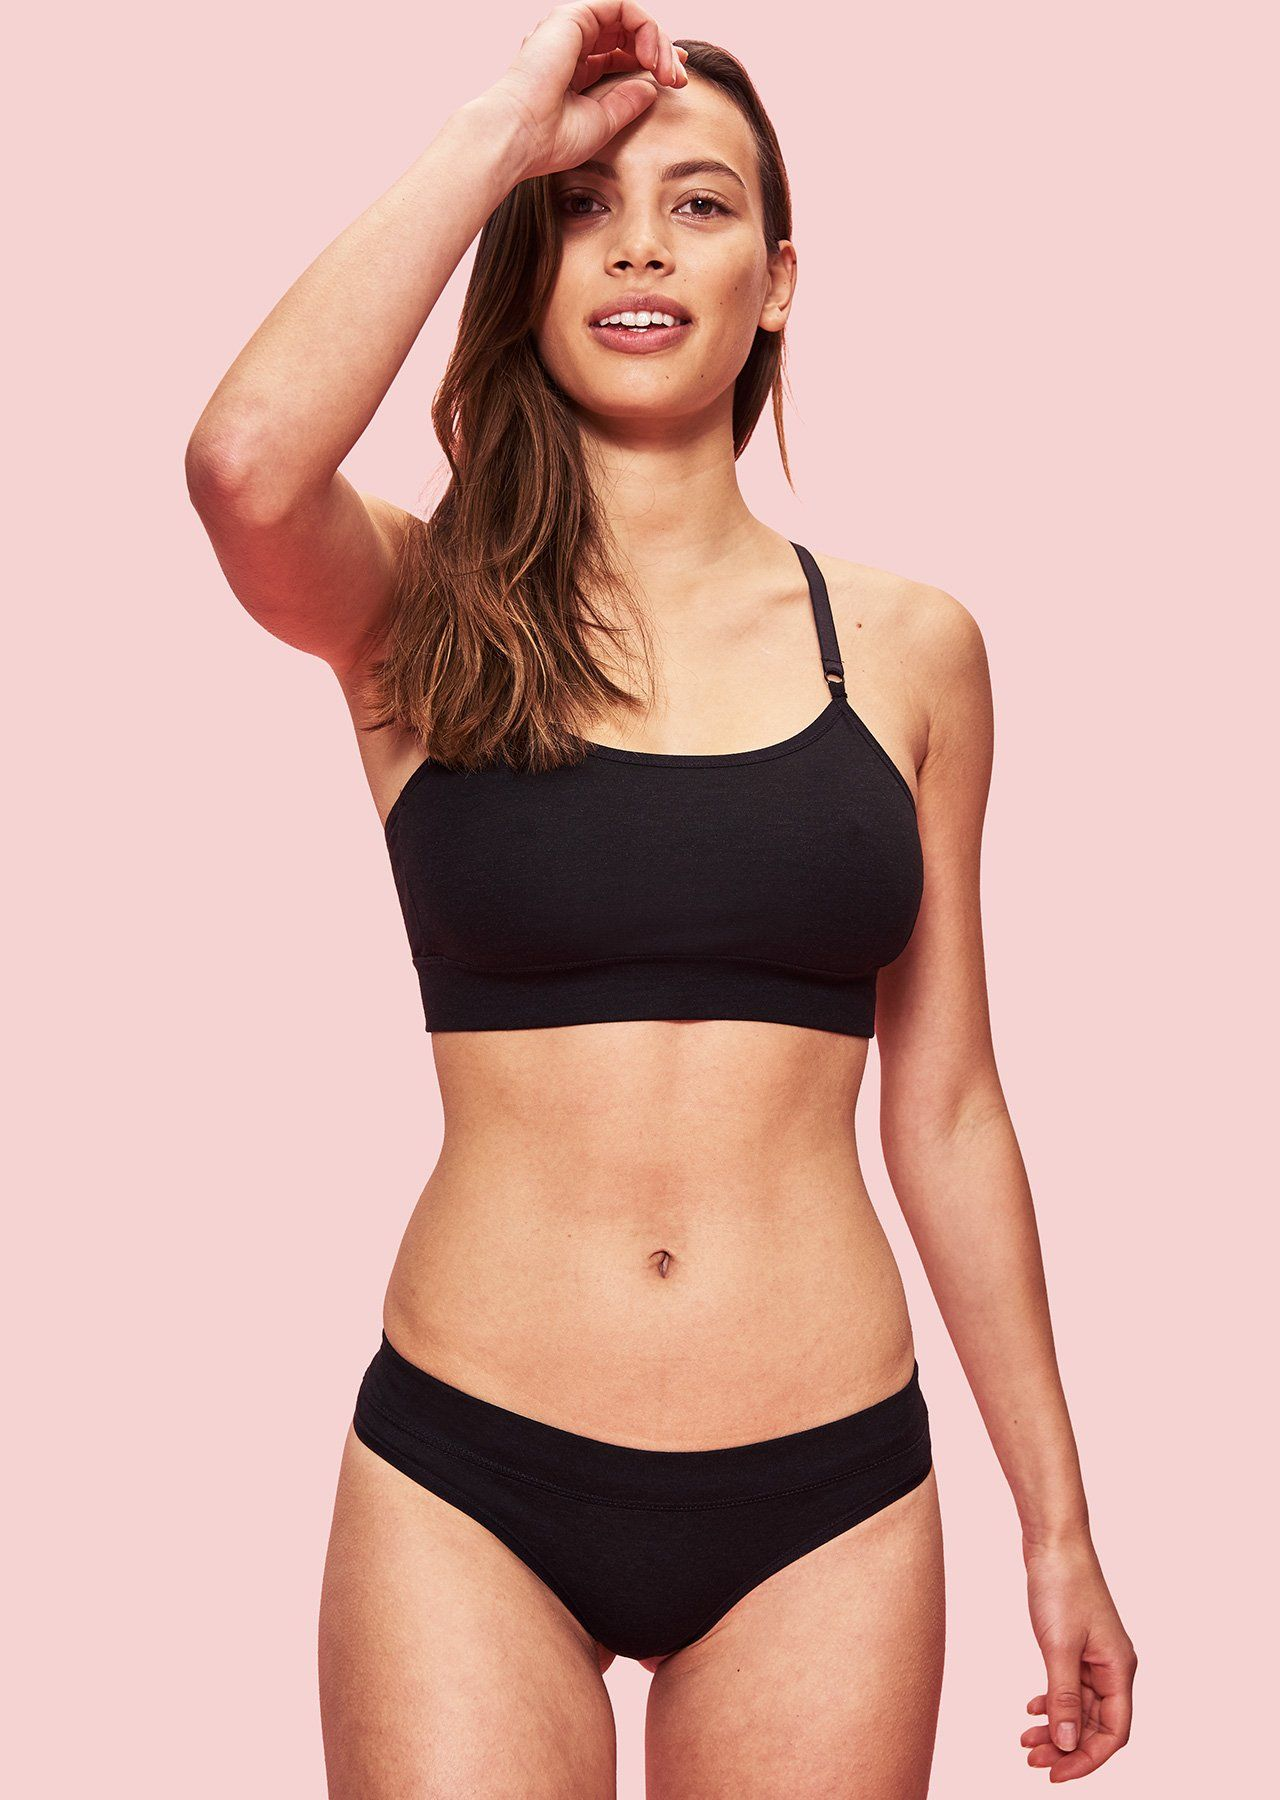 eab4a5e612f55 8 Ethical Lingerie Brands - Ethical Fashion Guide